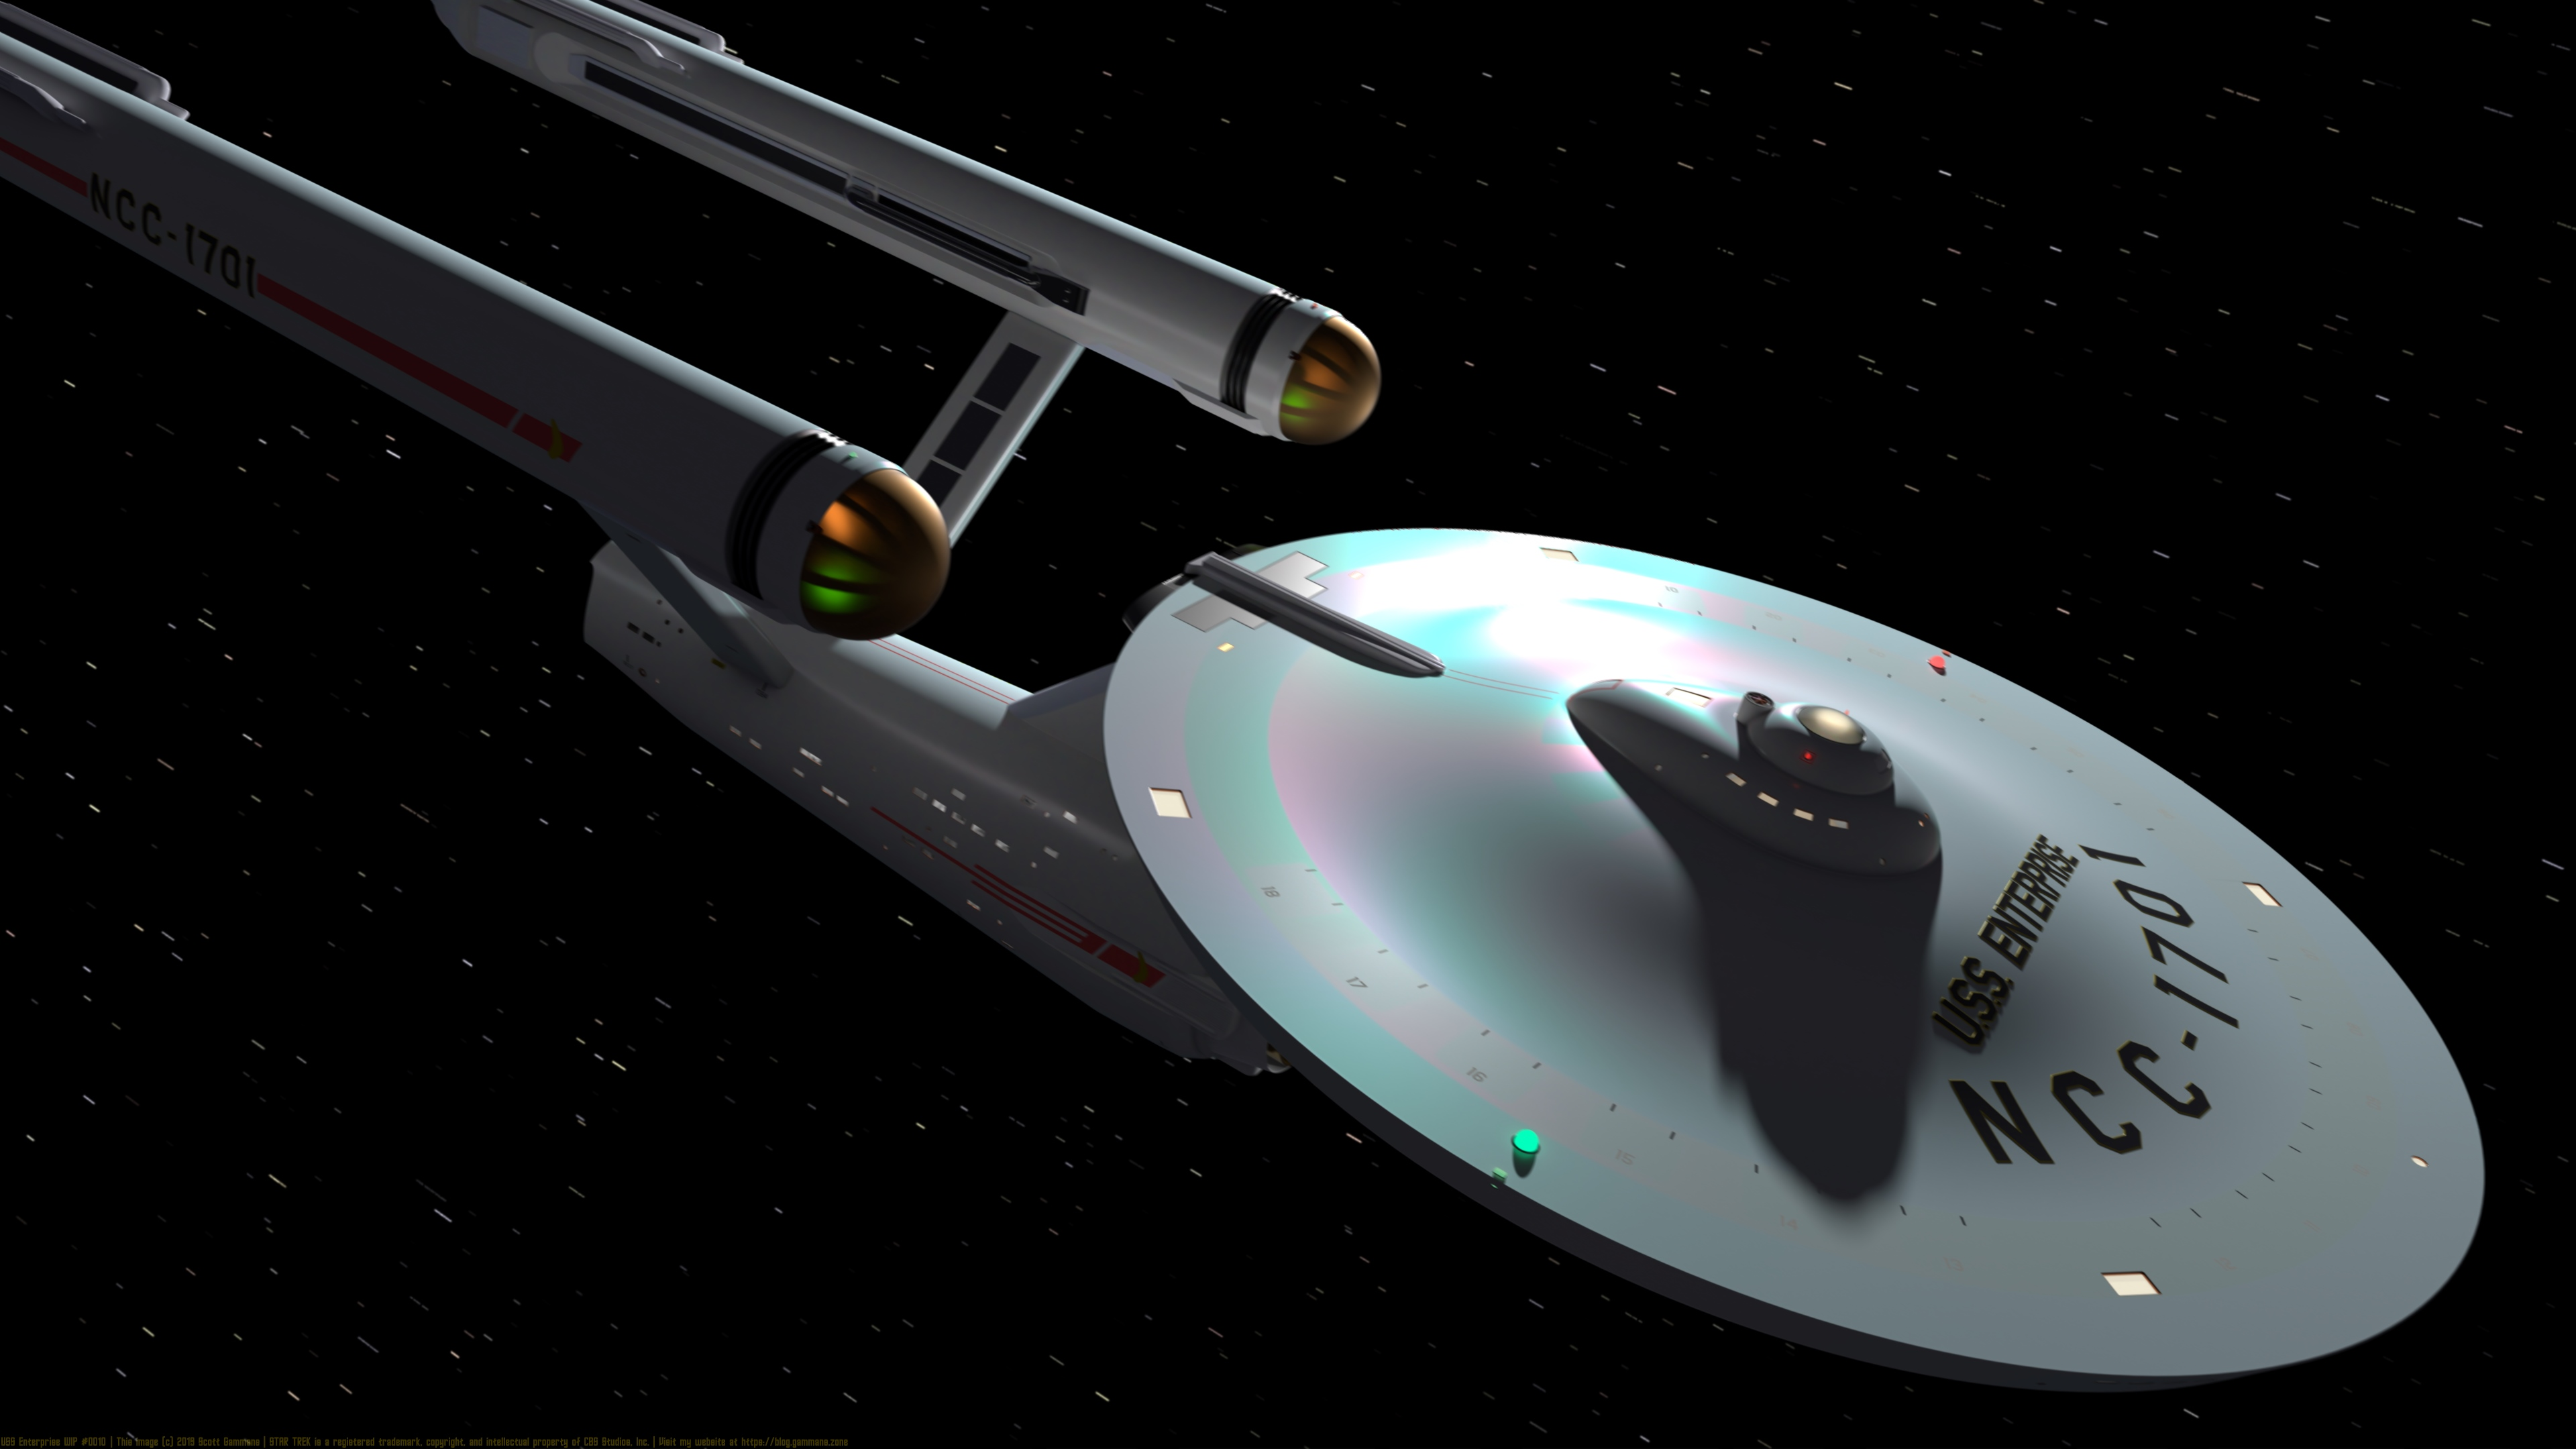 USS Enterprise WIP #0010 - 9 July 2019